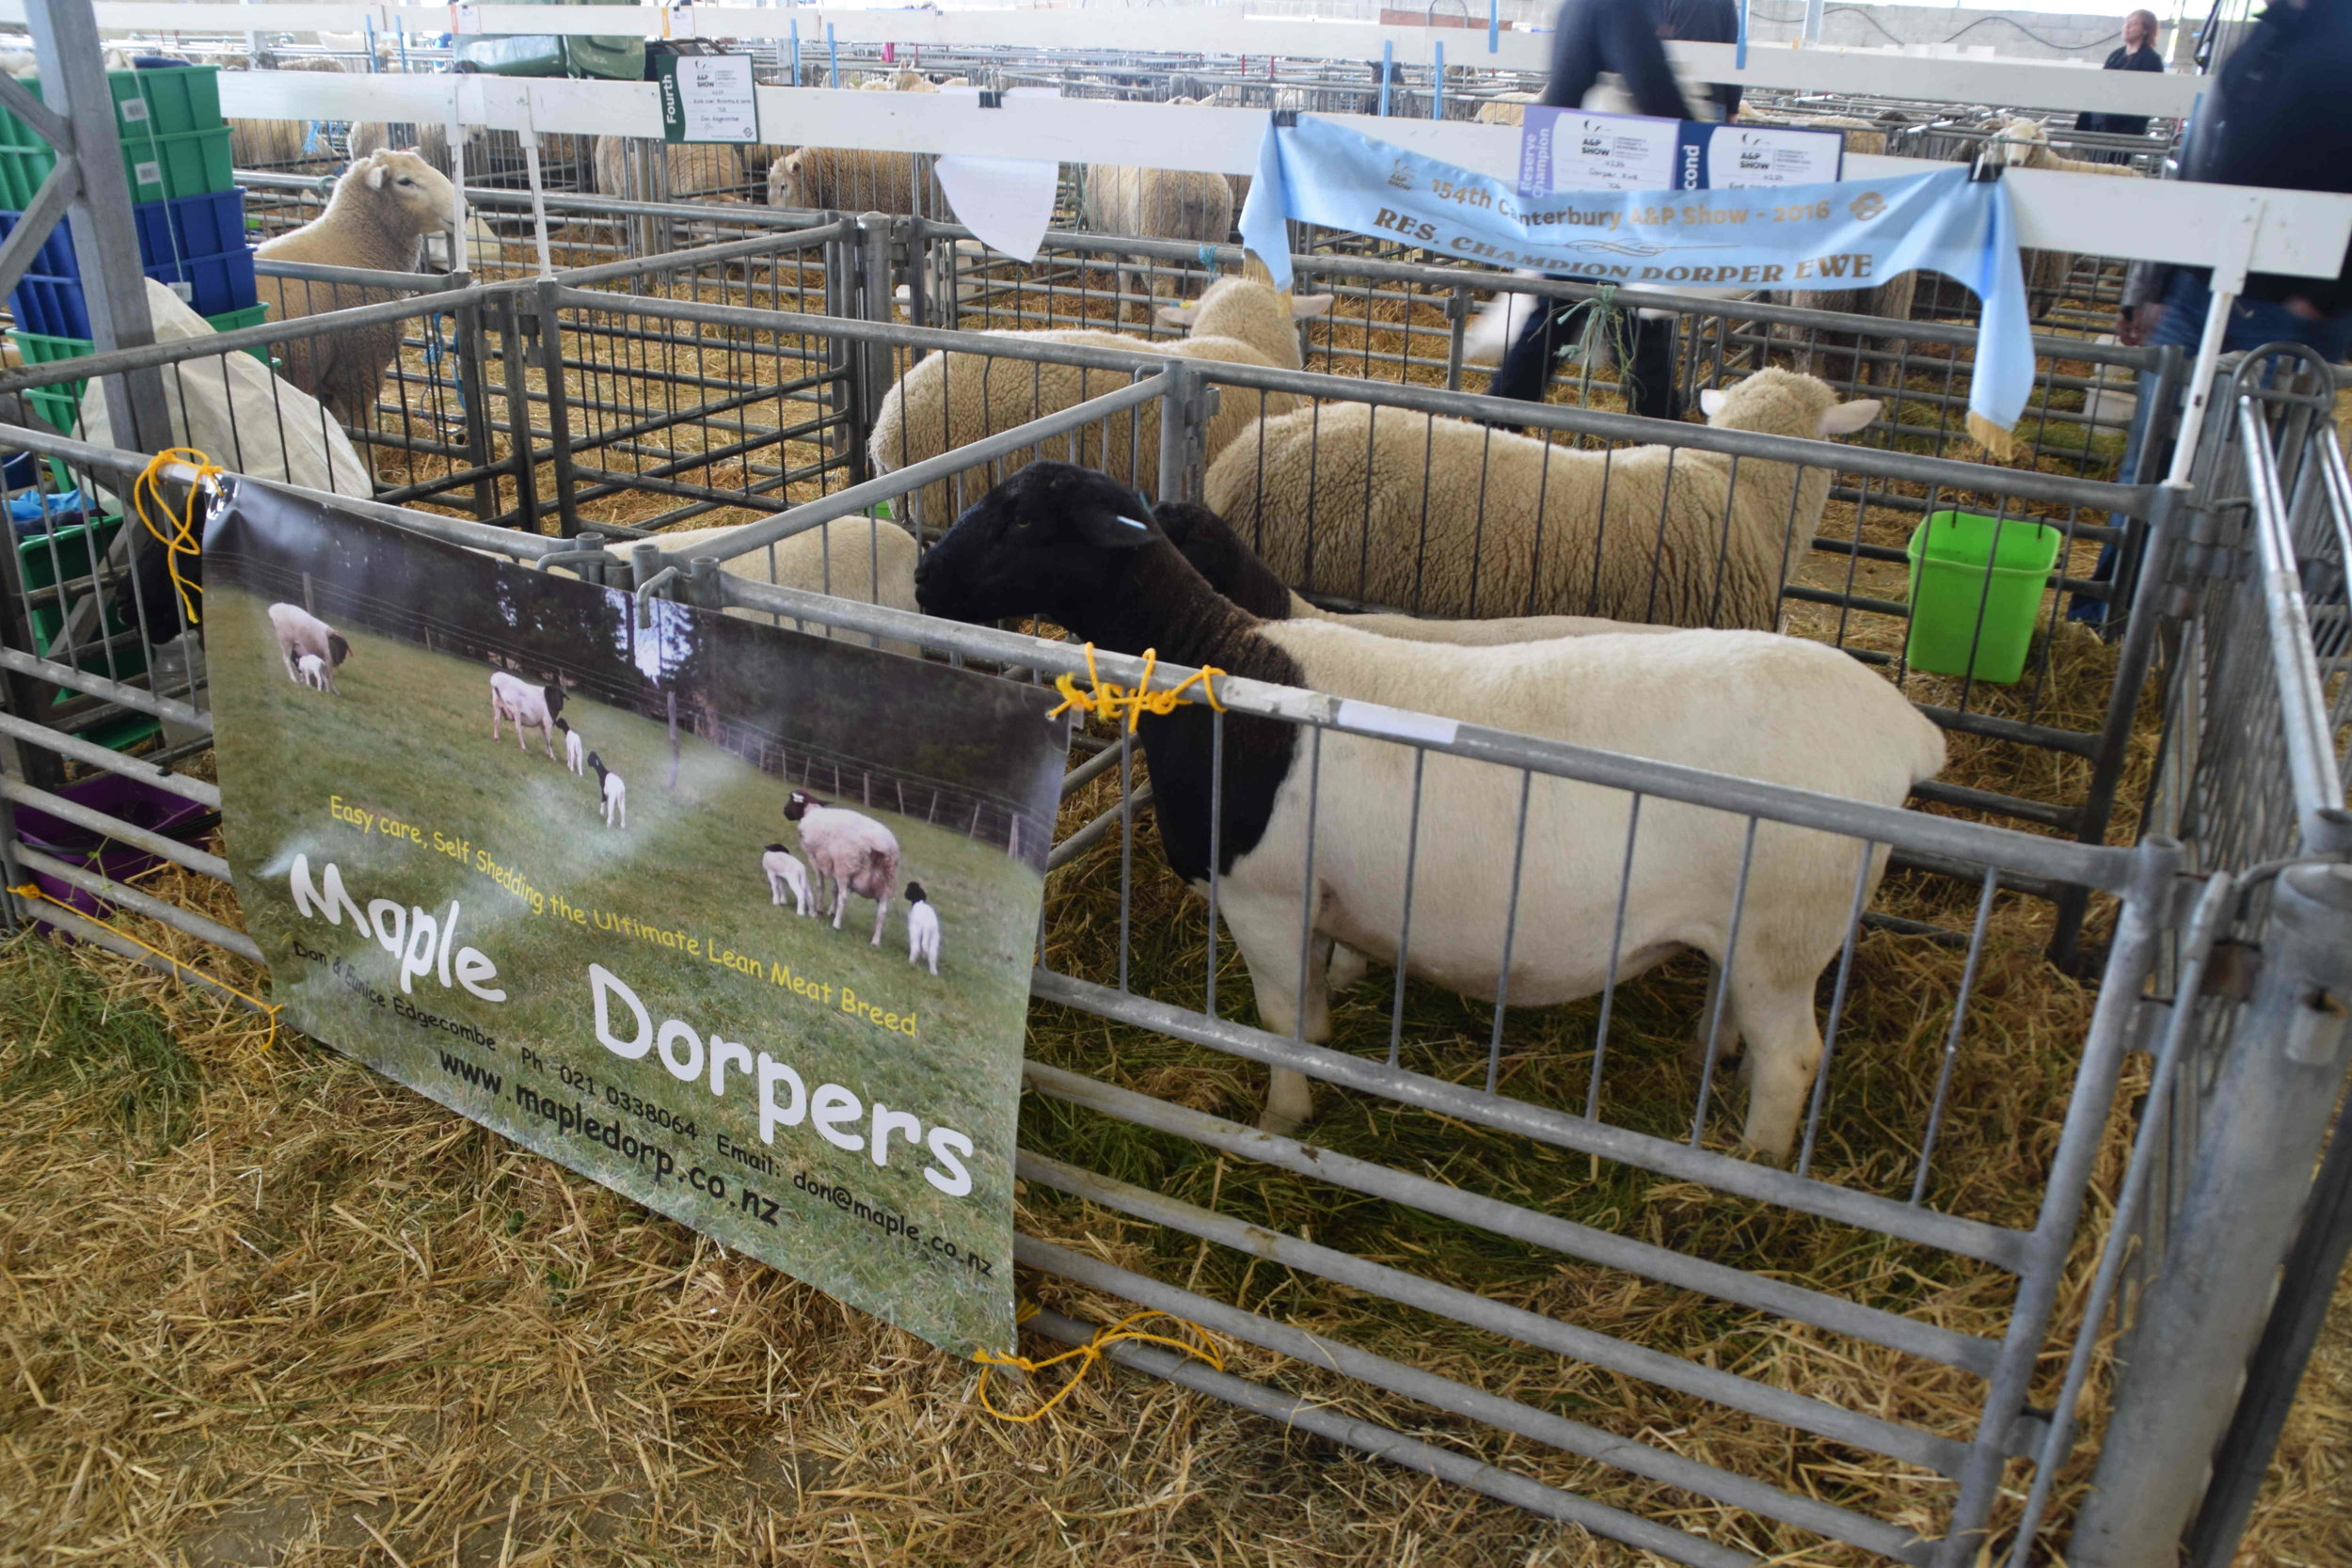 Maple Dorpers - a sheep breed known for its self shedding of wool